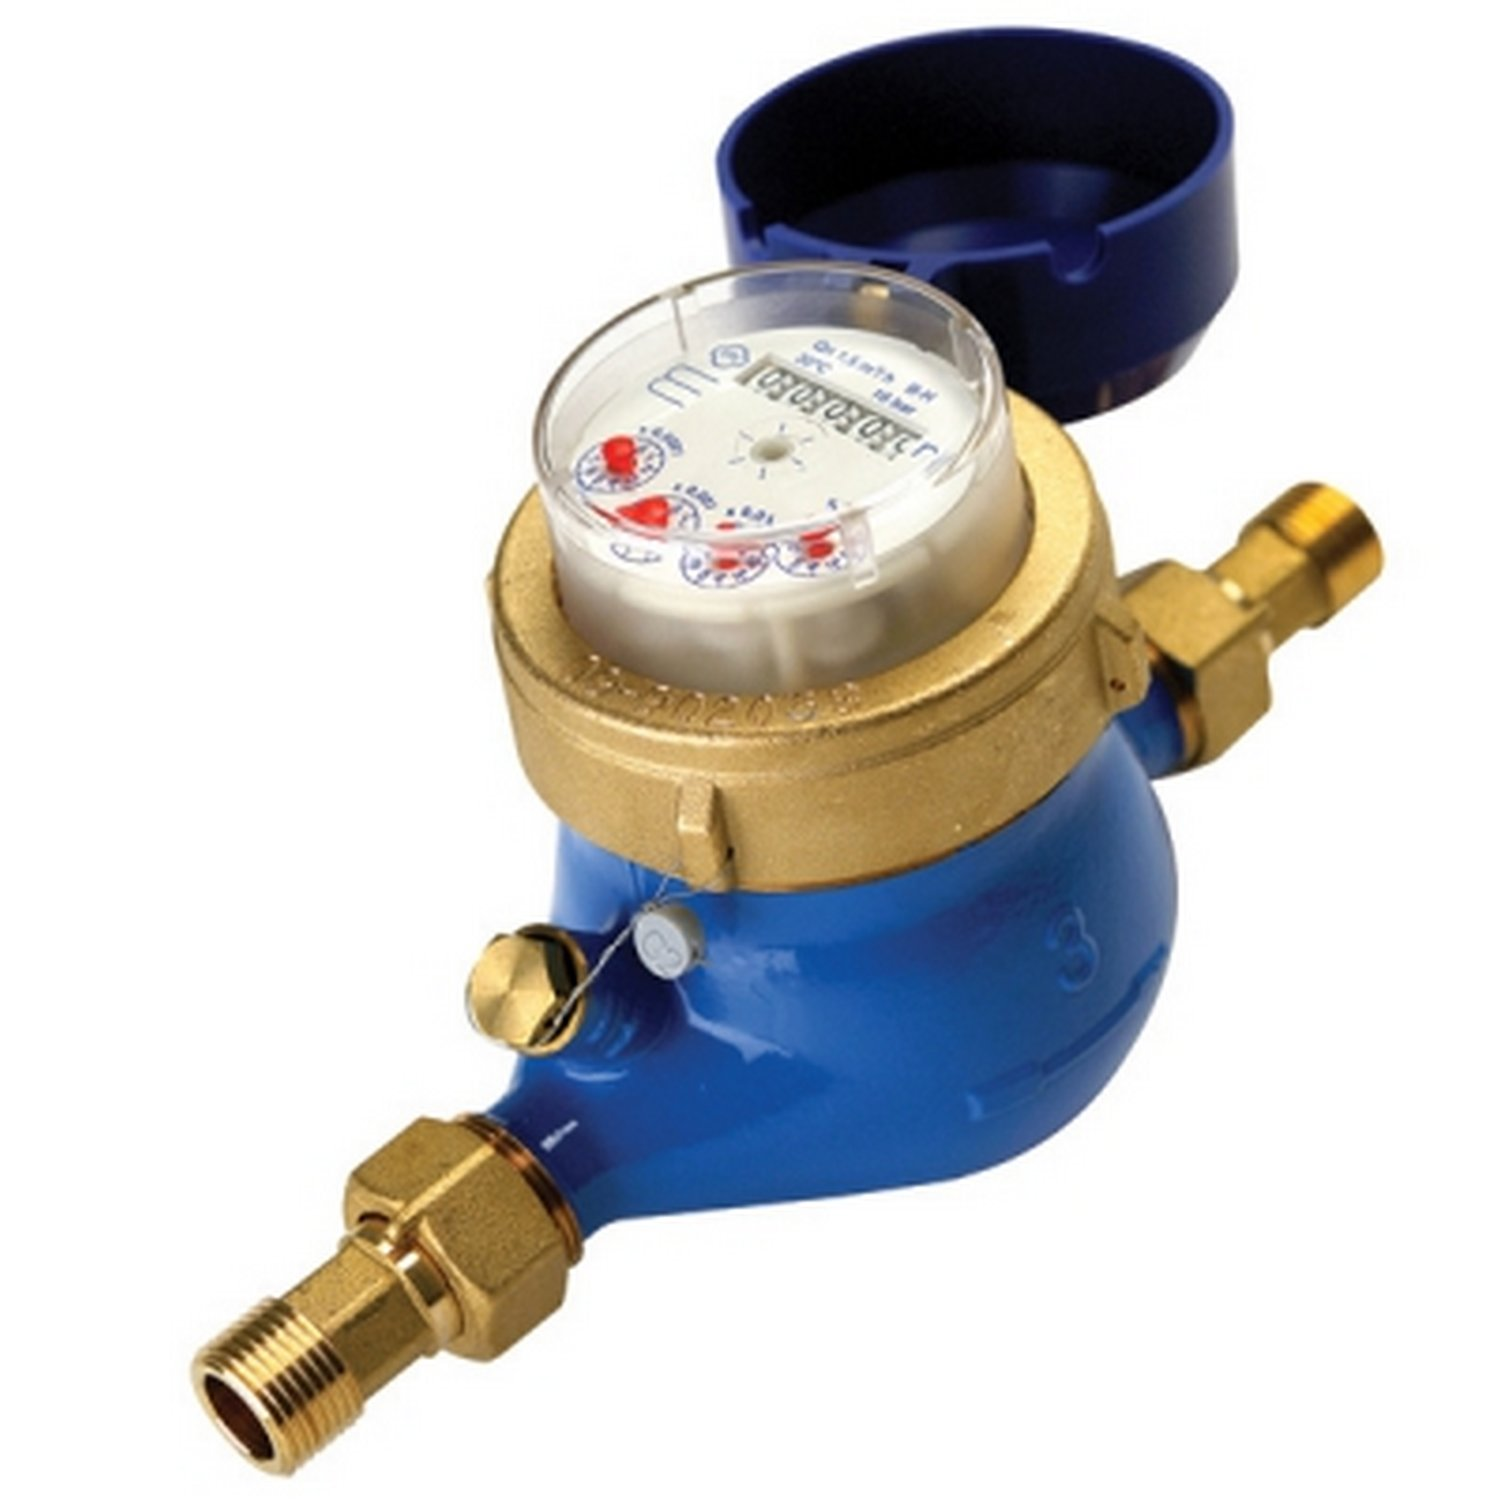 https://www.mepstock.co.uk/admin/images/Cold water meters - non pulsed 2.jpg